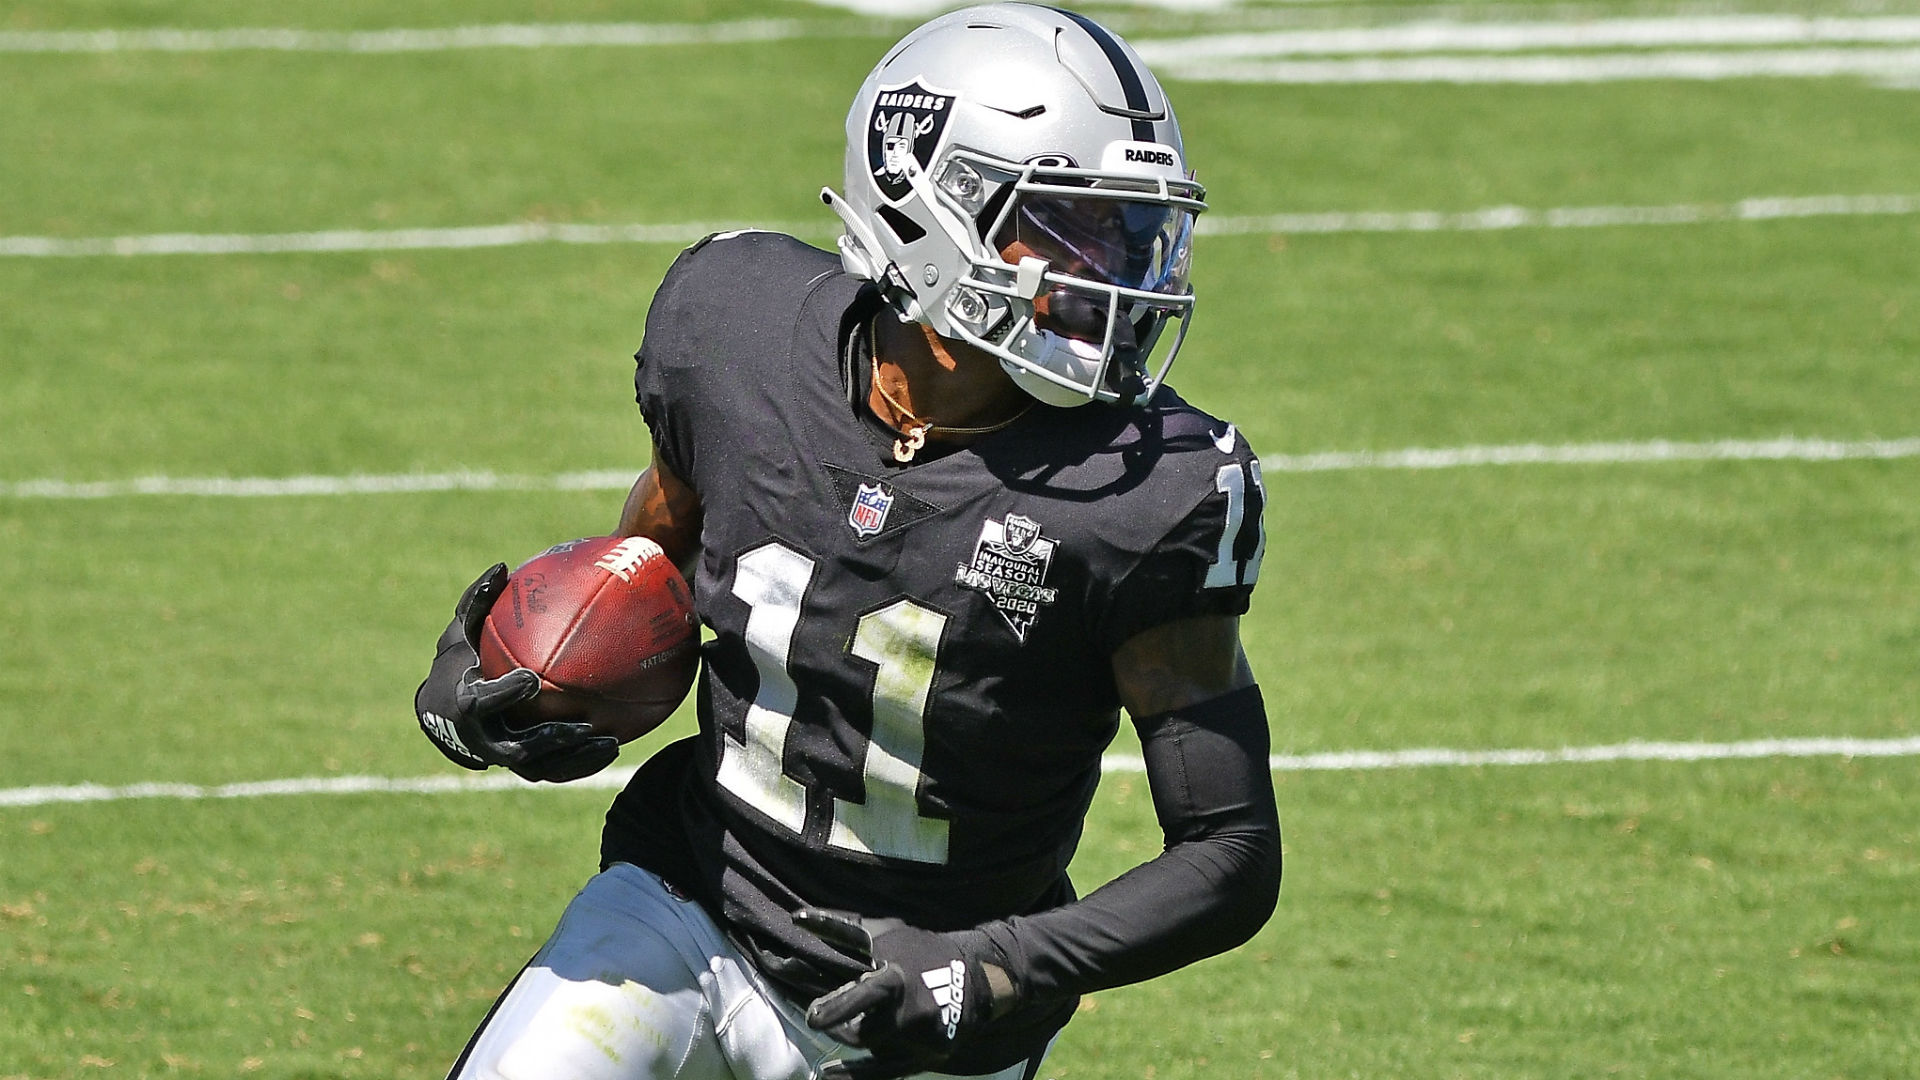 Is Henry Ruggs playing Monday night? Fantasy injury update for Raiders-Saints MNF game